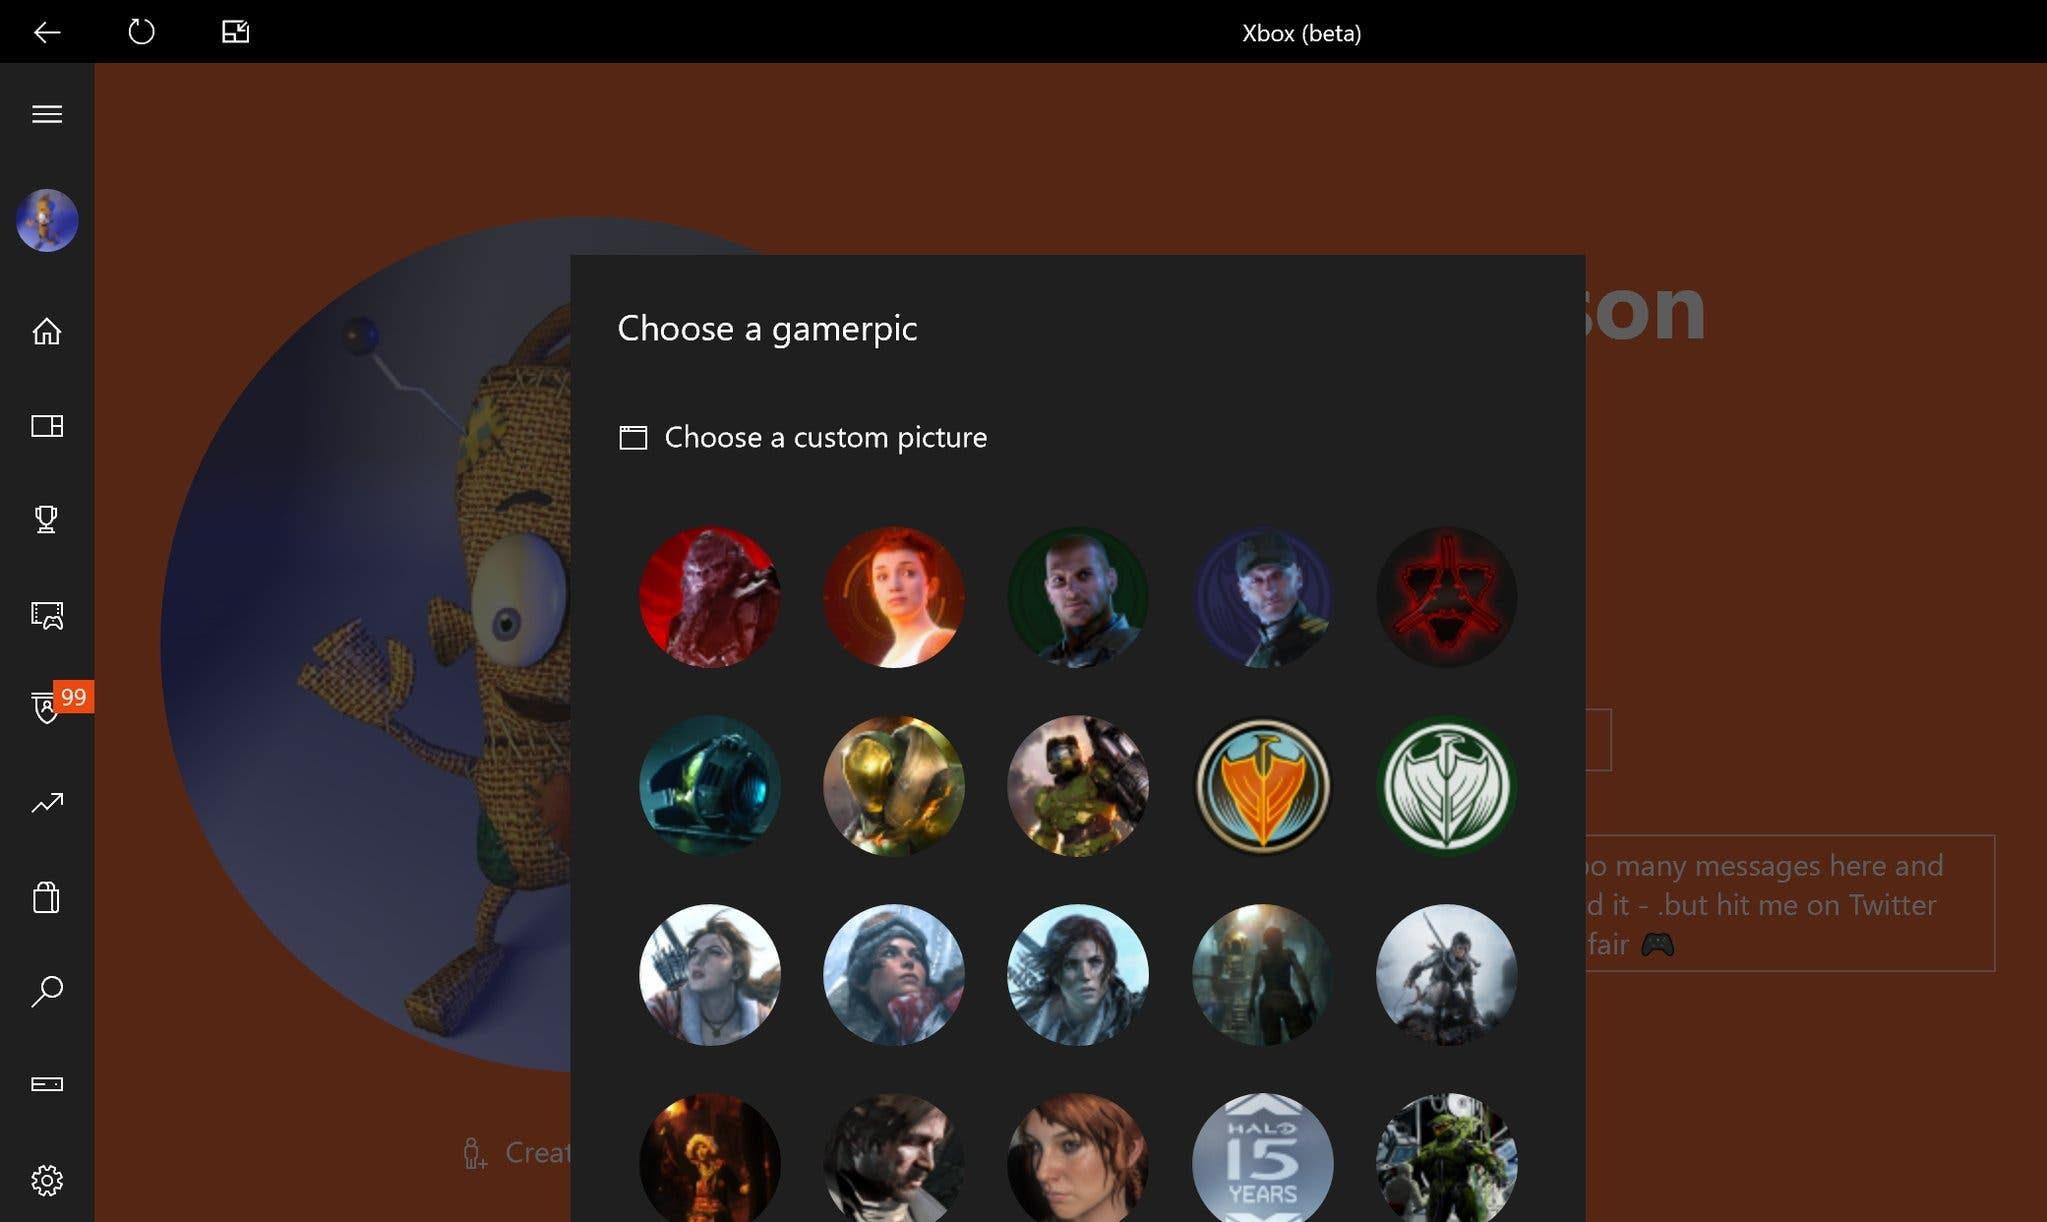 how to buy xbox live on xbox app